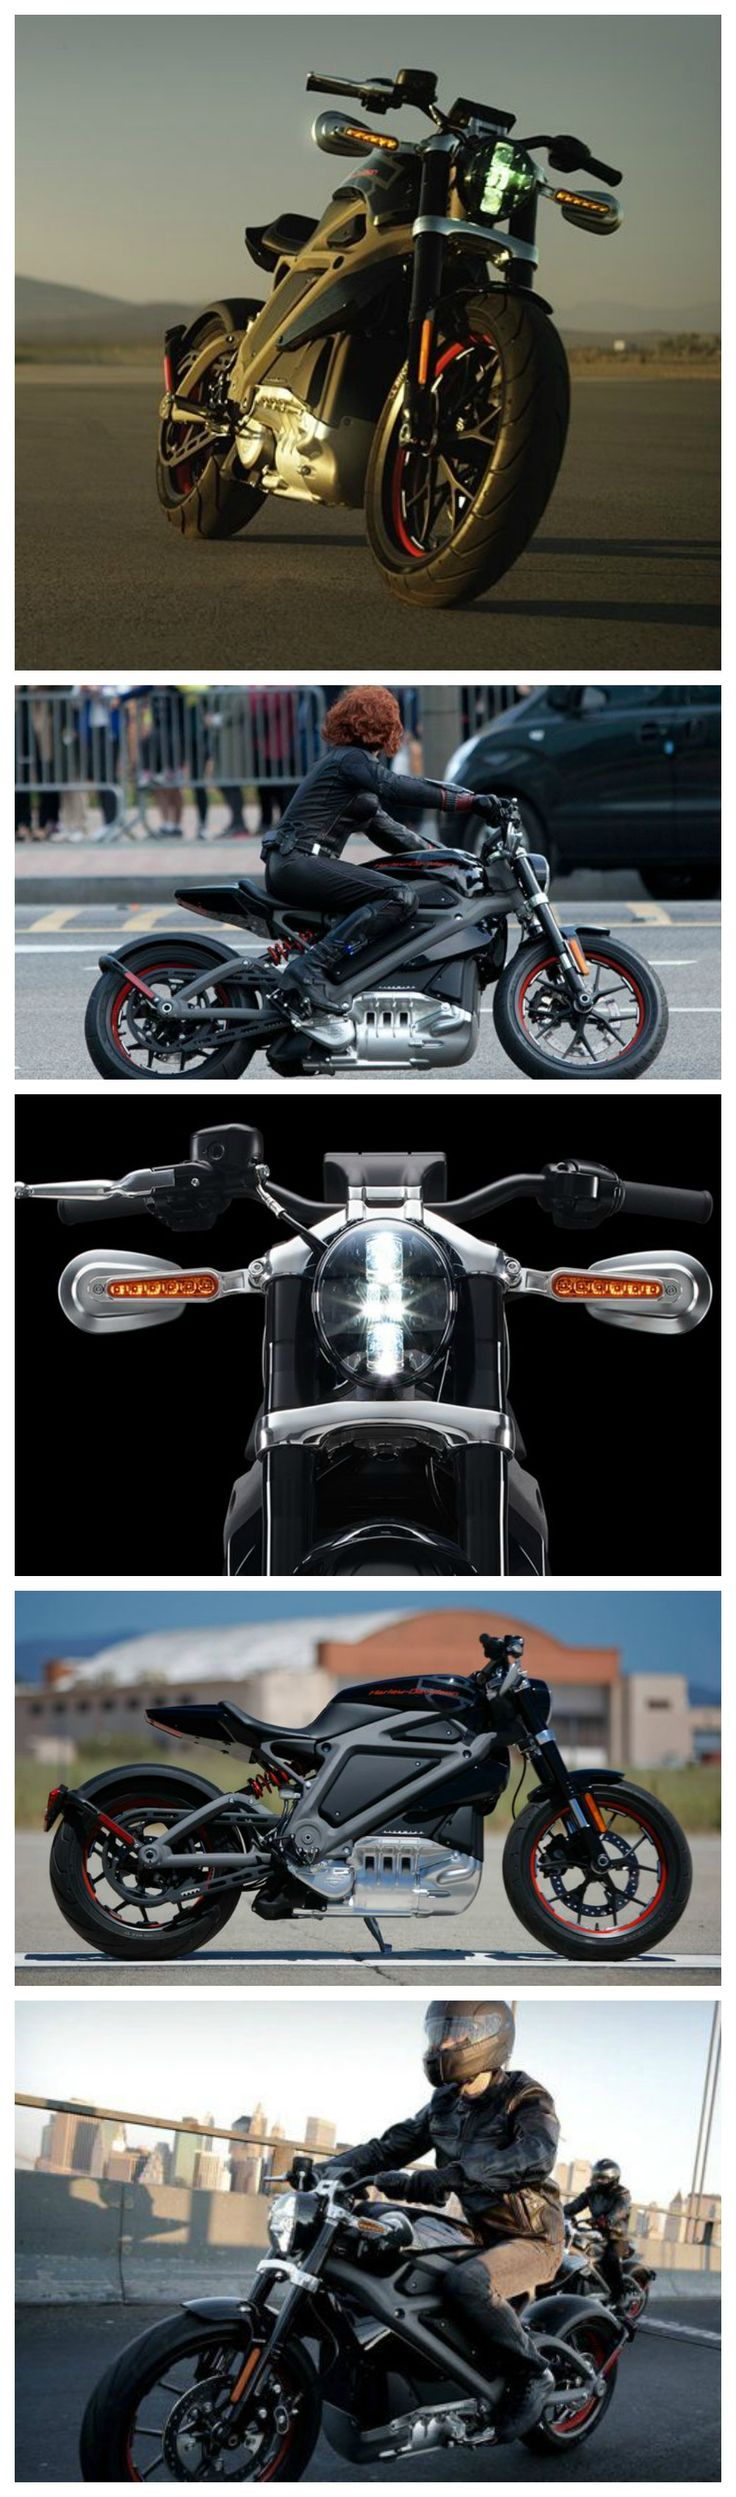 Electric Harley Davidson Motorcycle - Want one :)